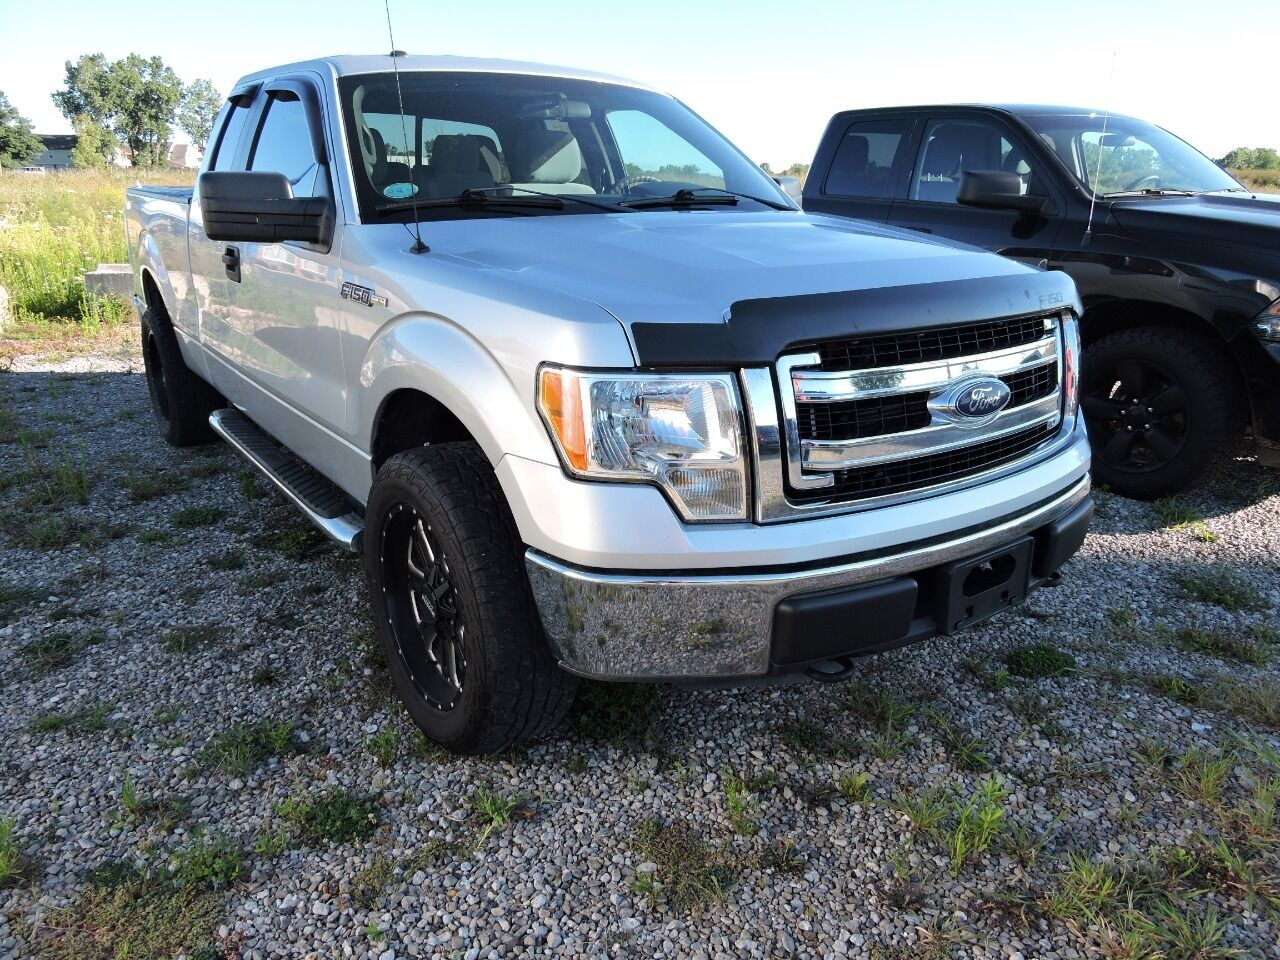 2013 Ford F-150 XL 4x4 4dr SuperCab Styleside 6.5 ft. SB Chesterfield MI